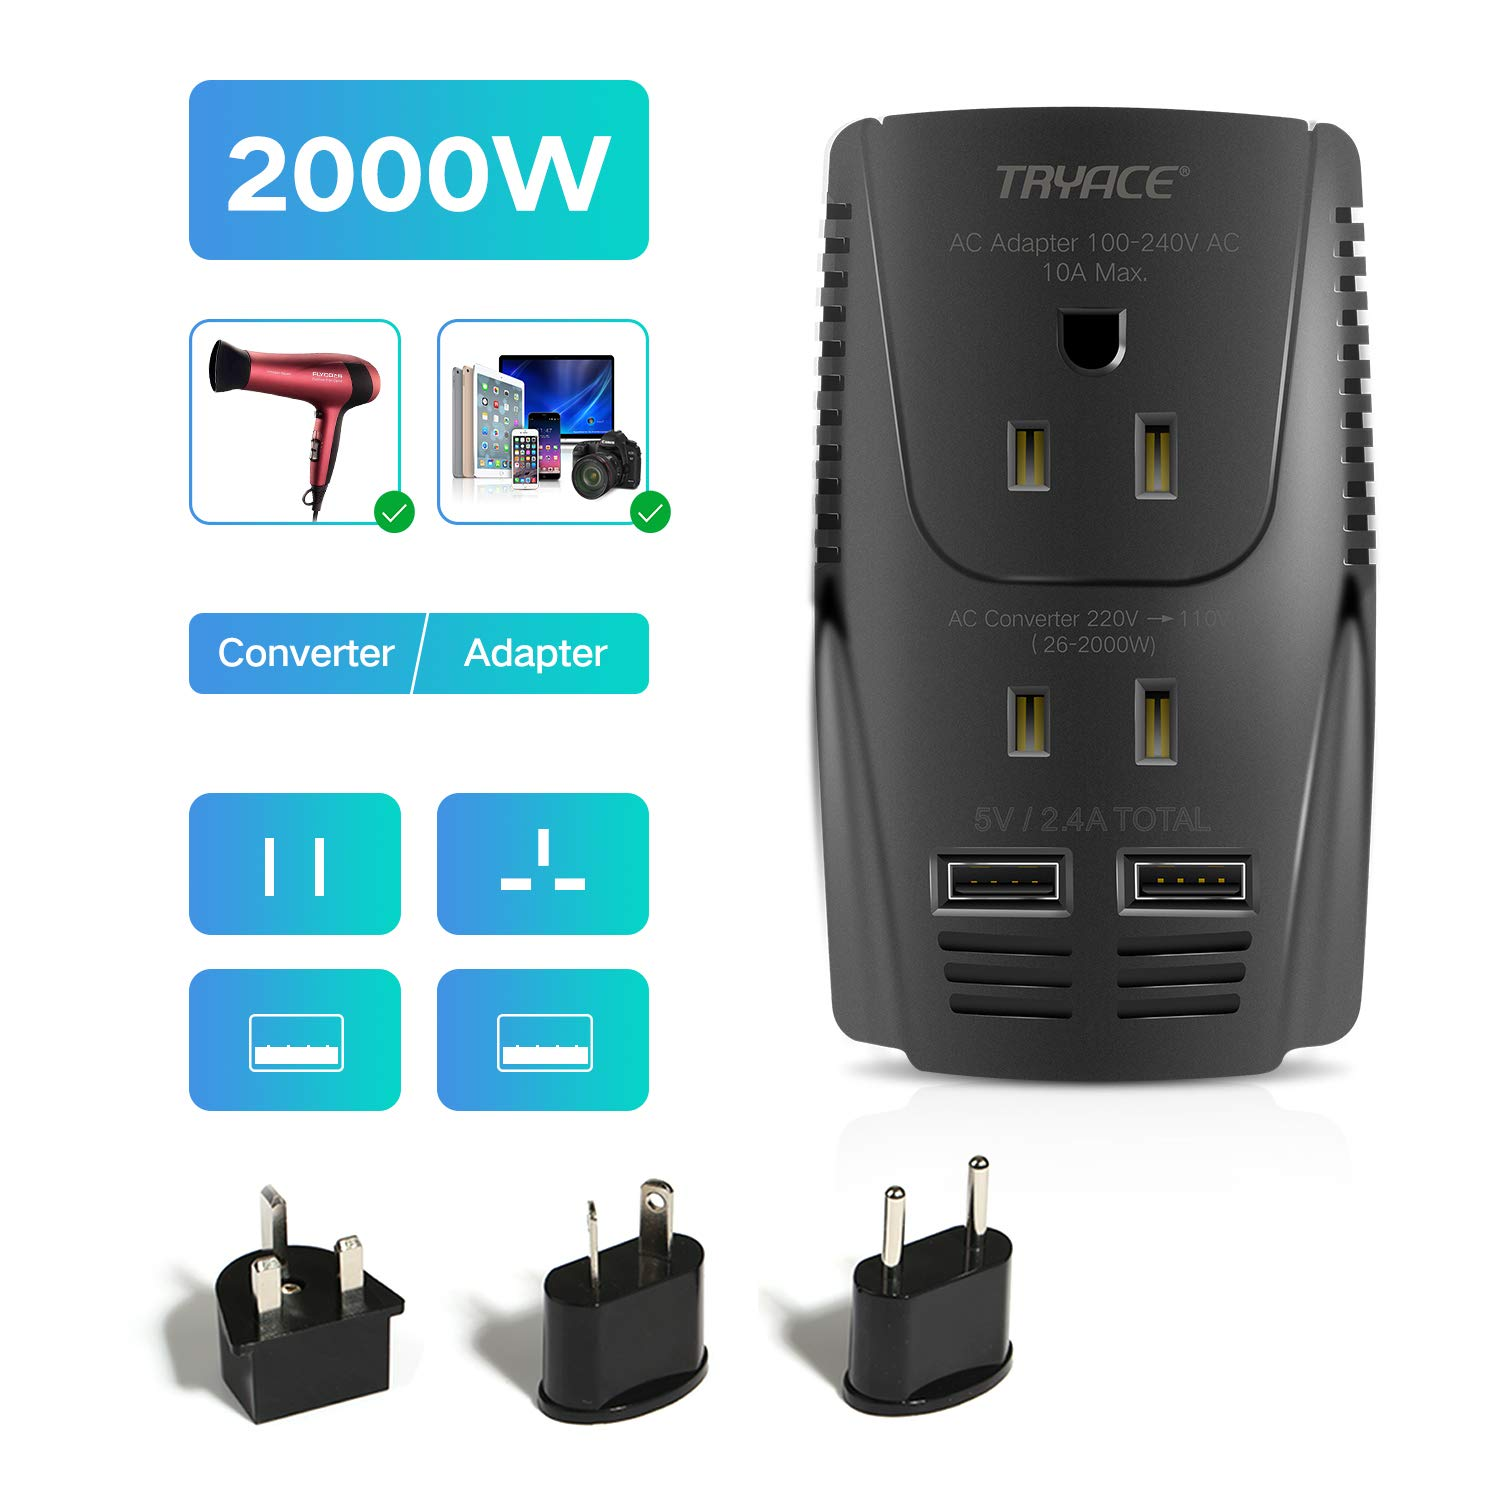 TryAce 2000W 220V to 110V Voltage Converter Step Down Voltage for Hair Dryer, Straightener, Curling Iron,Laptop,Cell Phone.Power Converter with 2-Port USB and UK/AU/US/EU Worldwide 10A Plug Adapter by TryAce